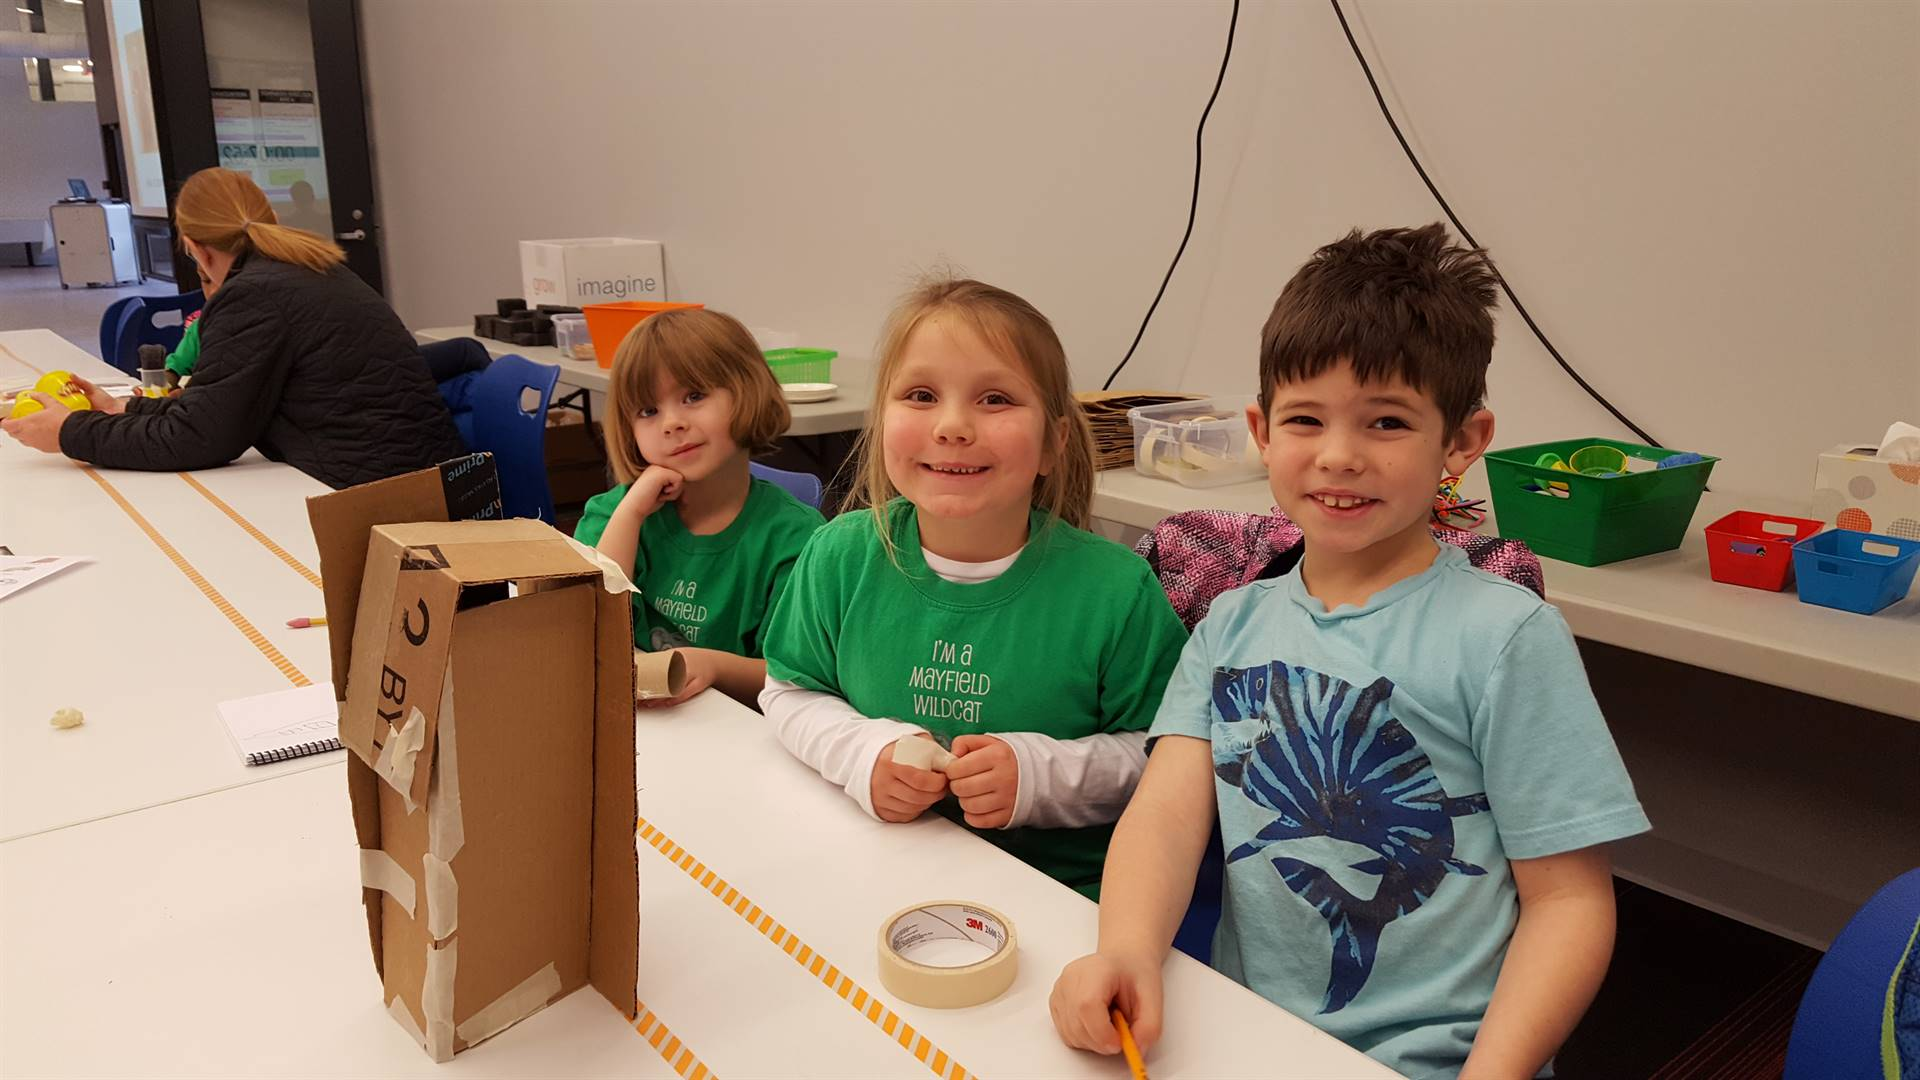 3 students showing building